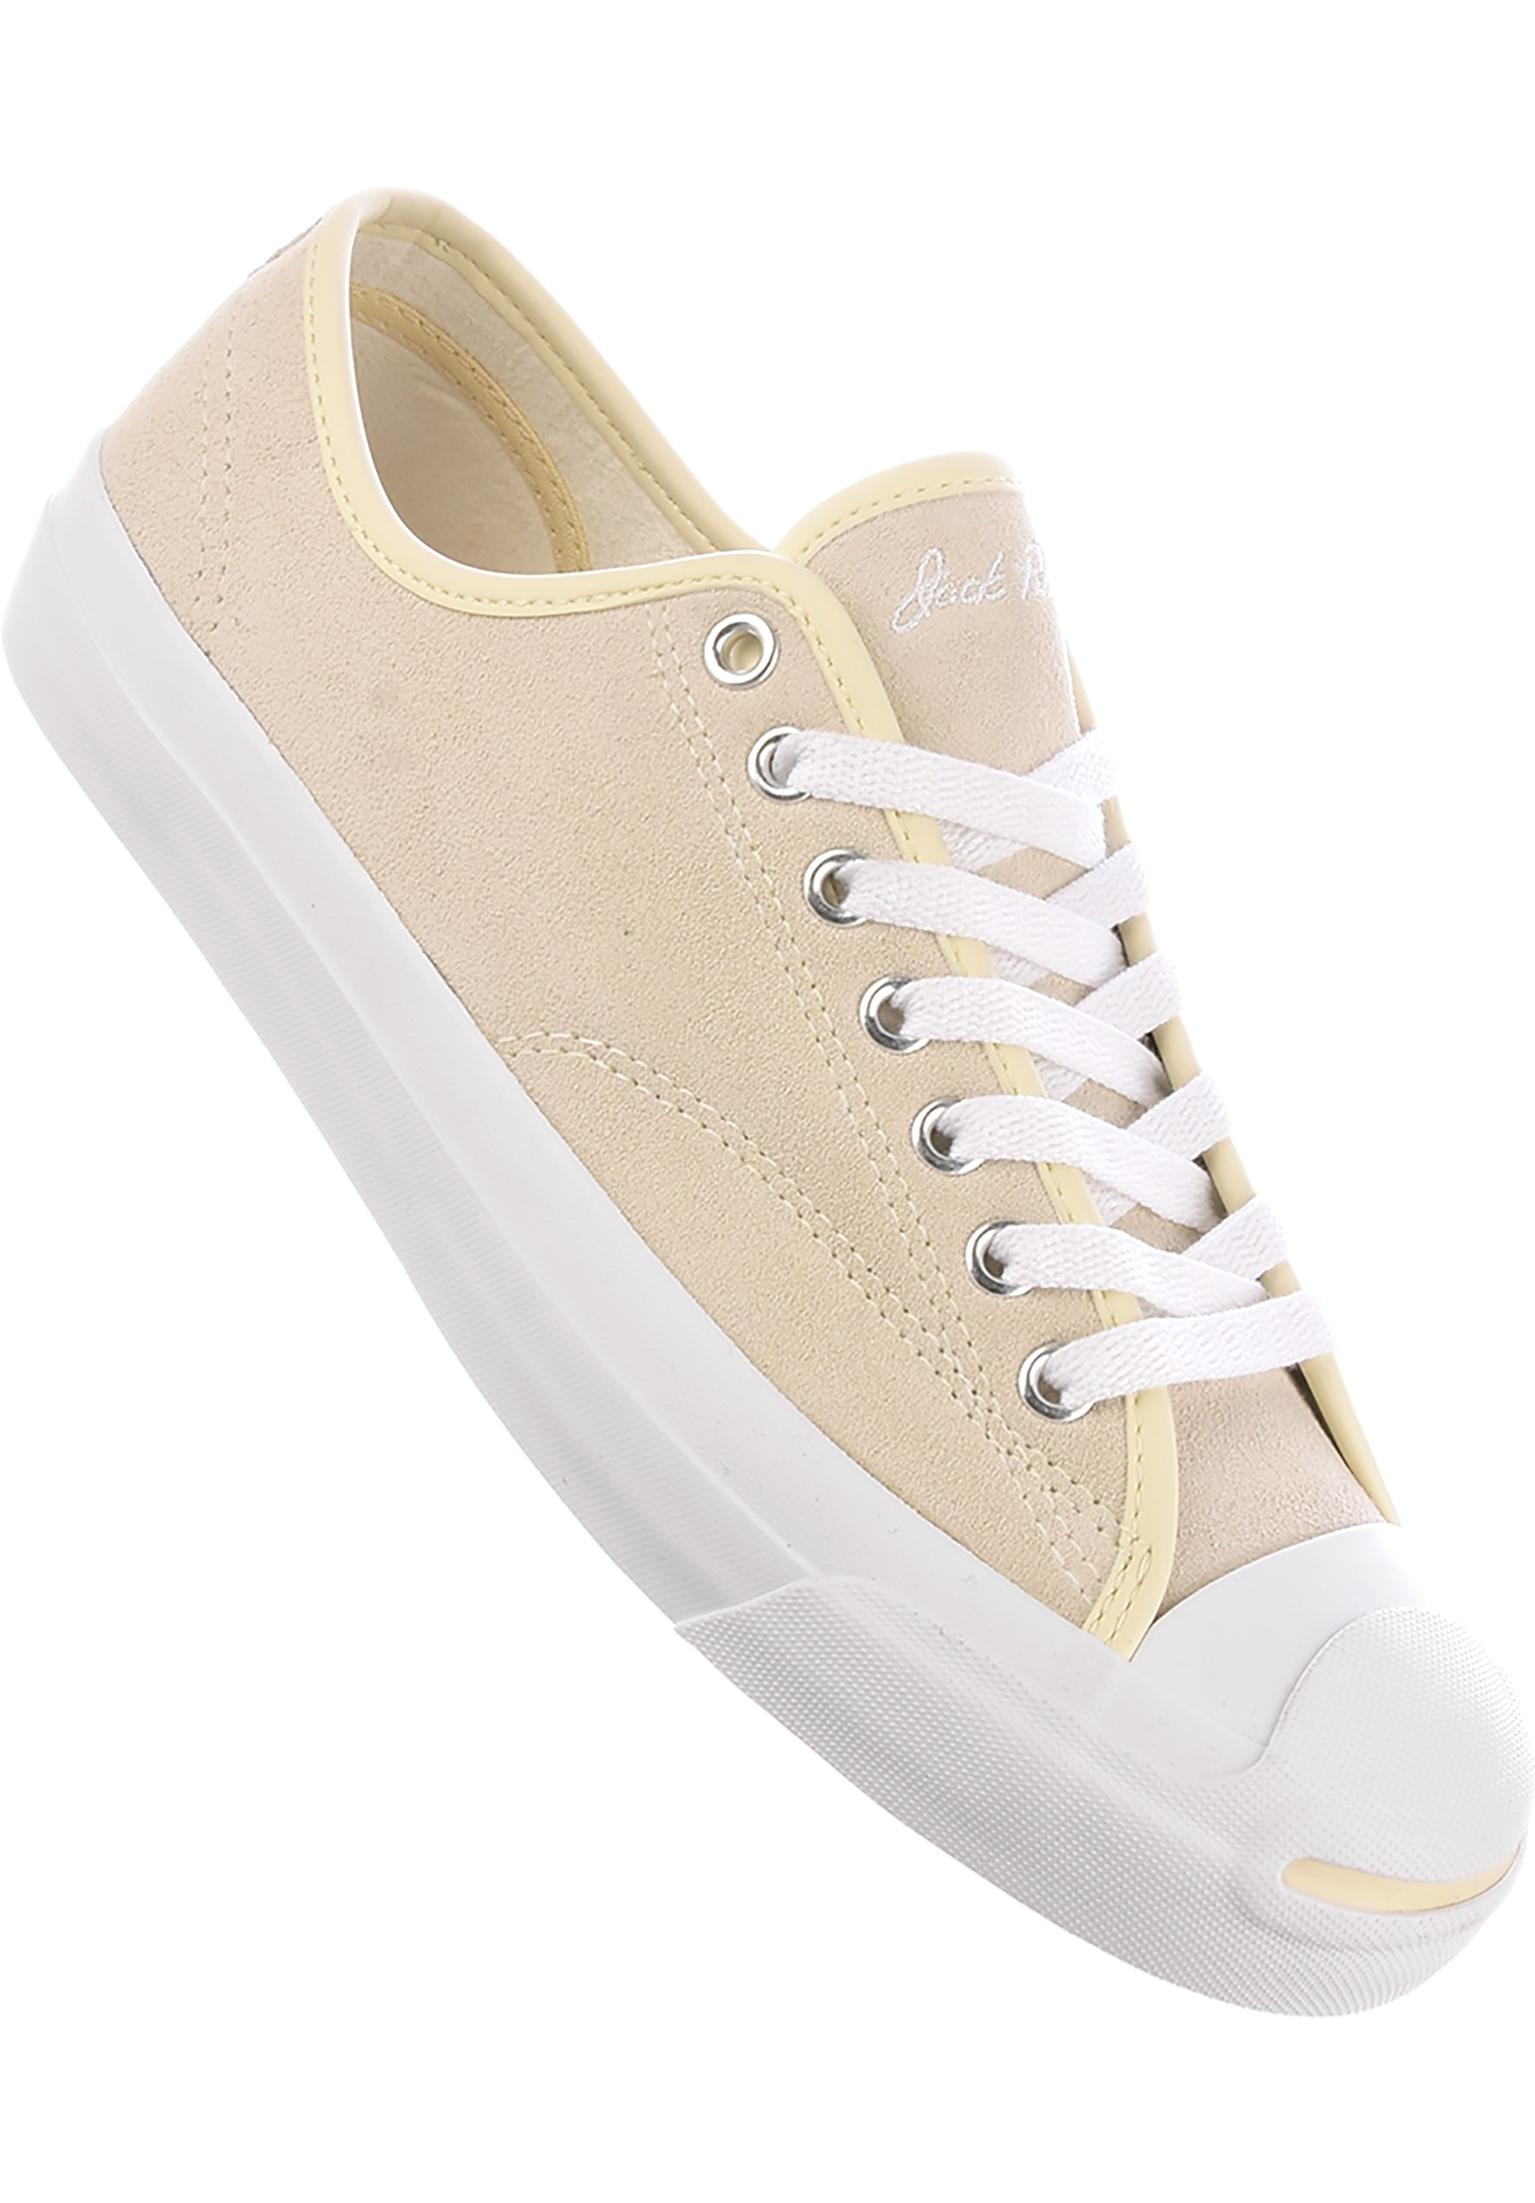 89dc96249614 Jack Purcell Pro Ox Converse CONS All Shoes in natural-white for Men ...